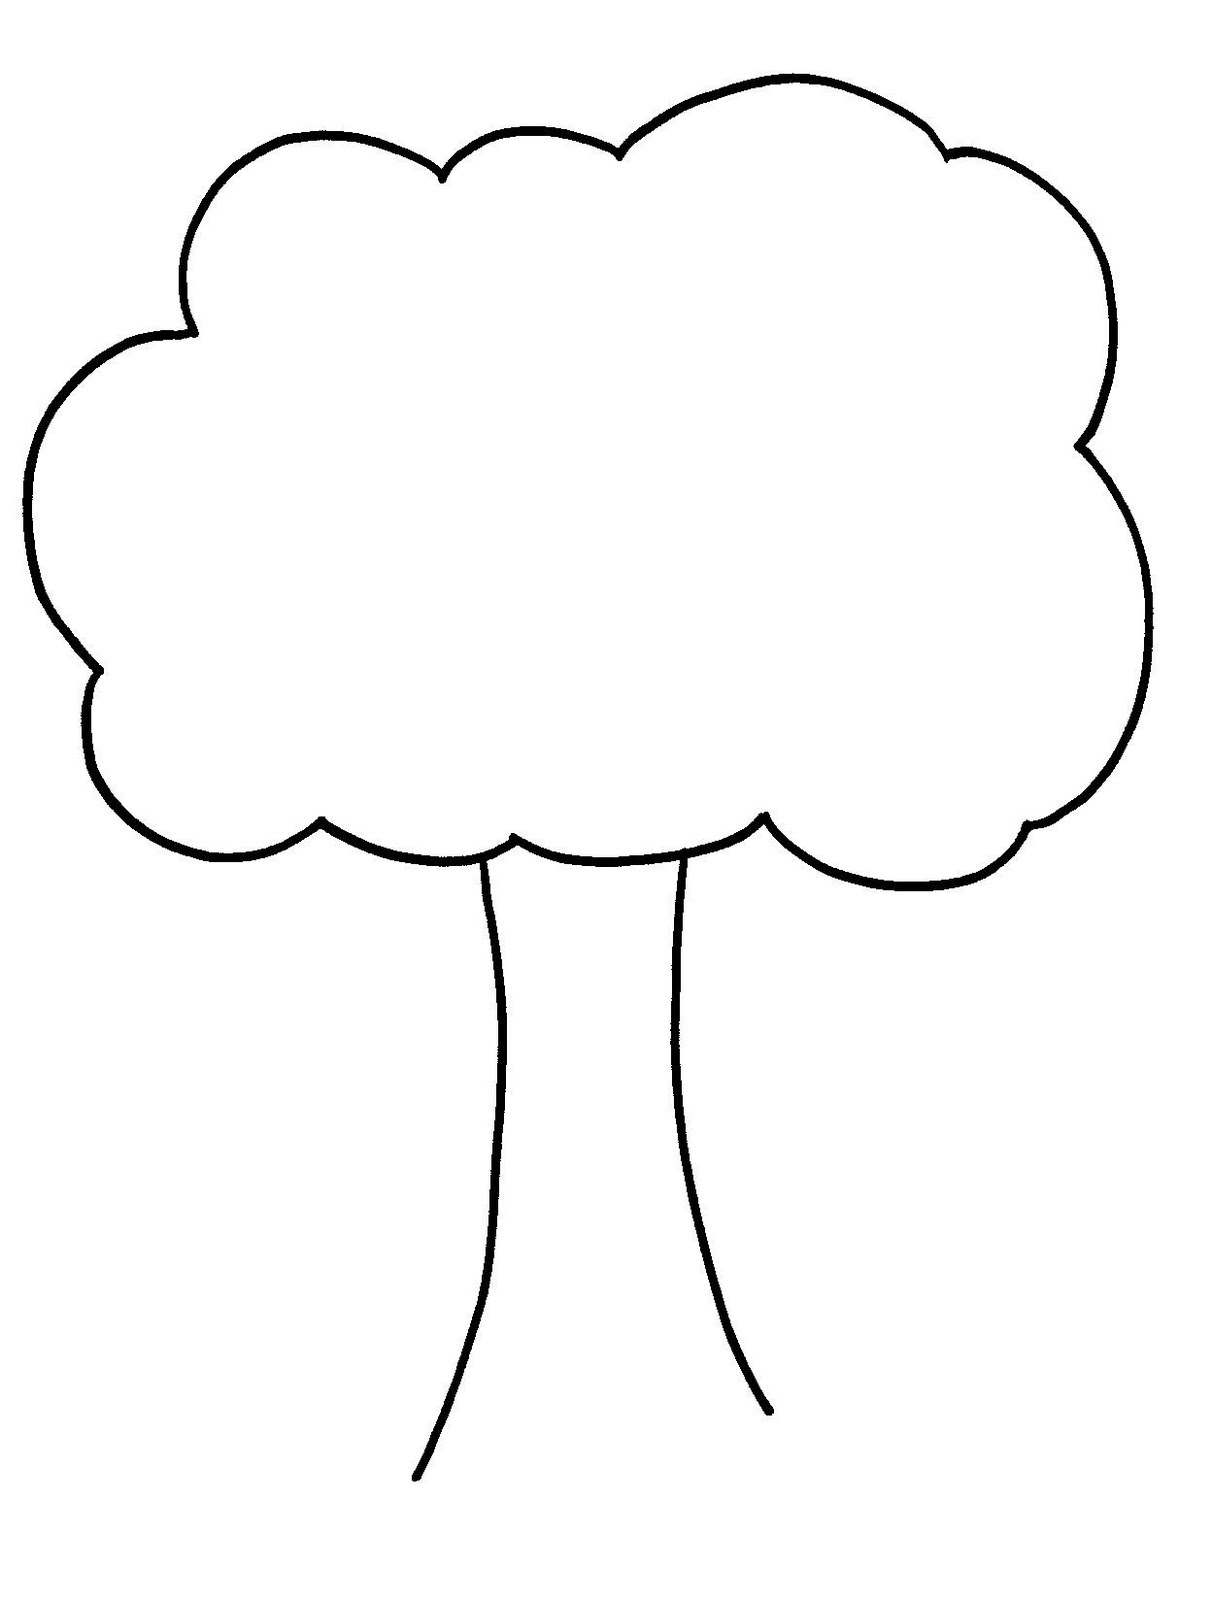 plain family tree template - tree outline printable clipart best